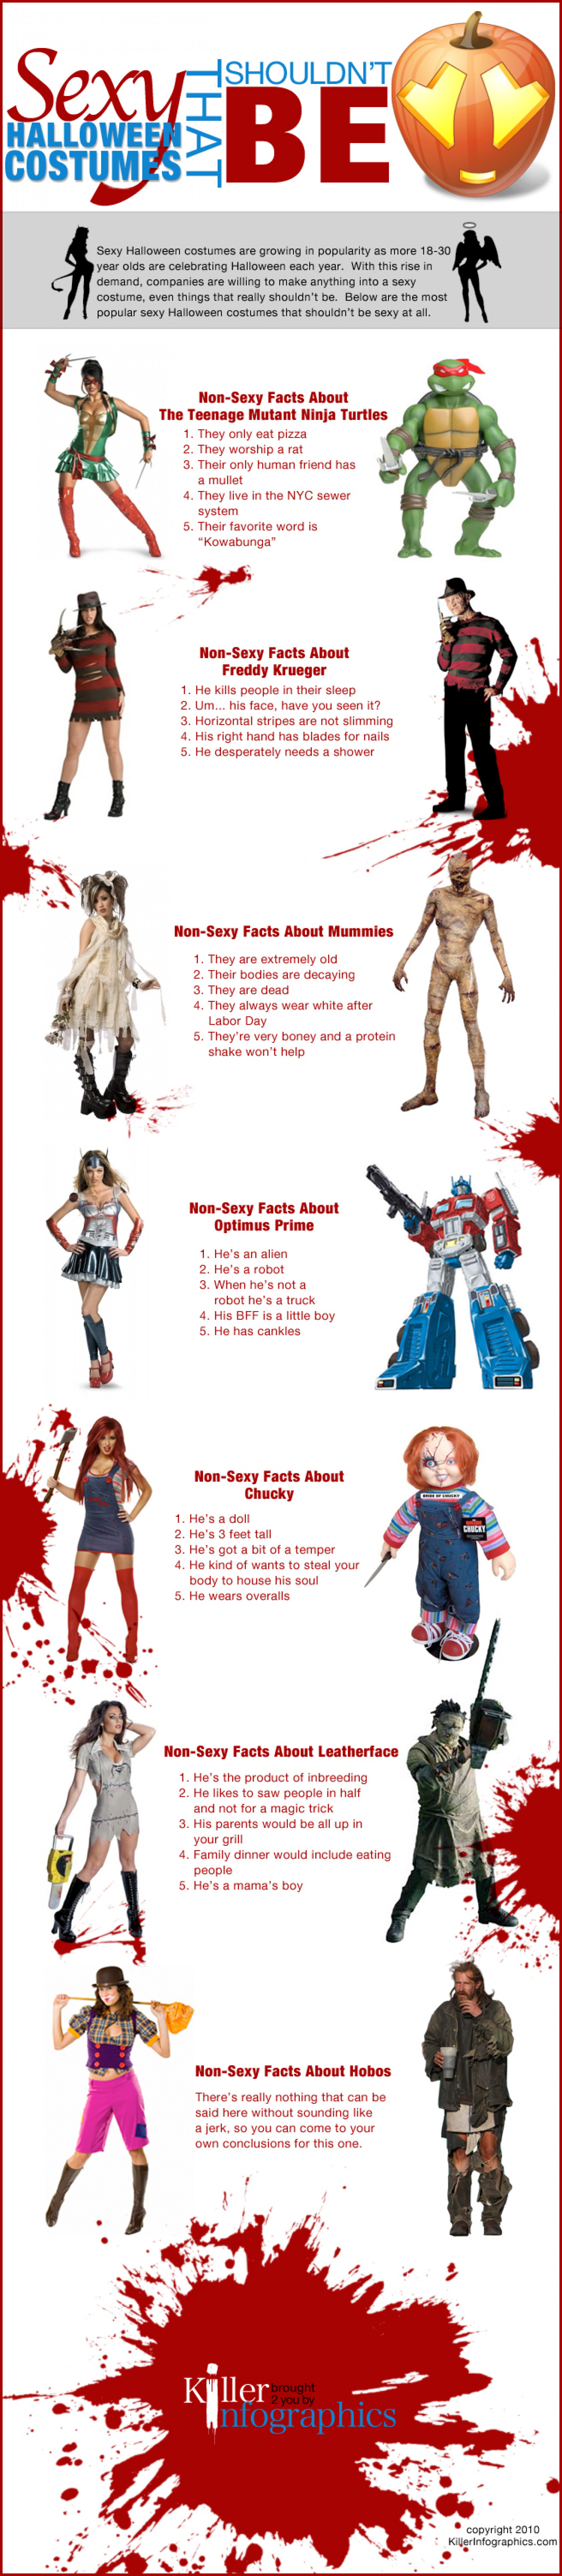 Sexy Halloween Costumes that Shouldn't Be Infographic